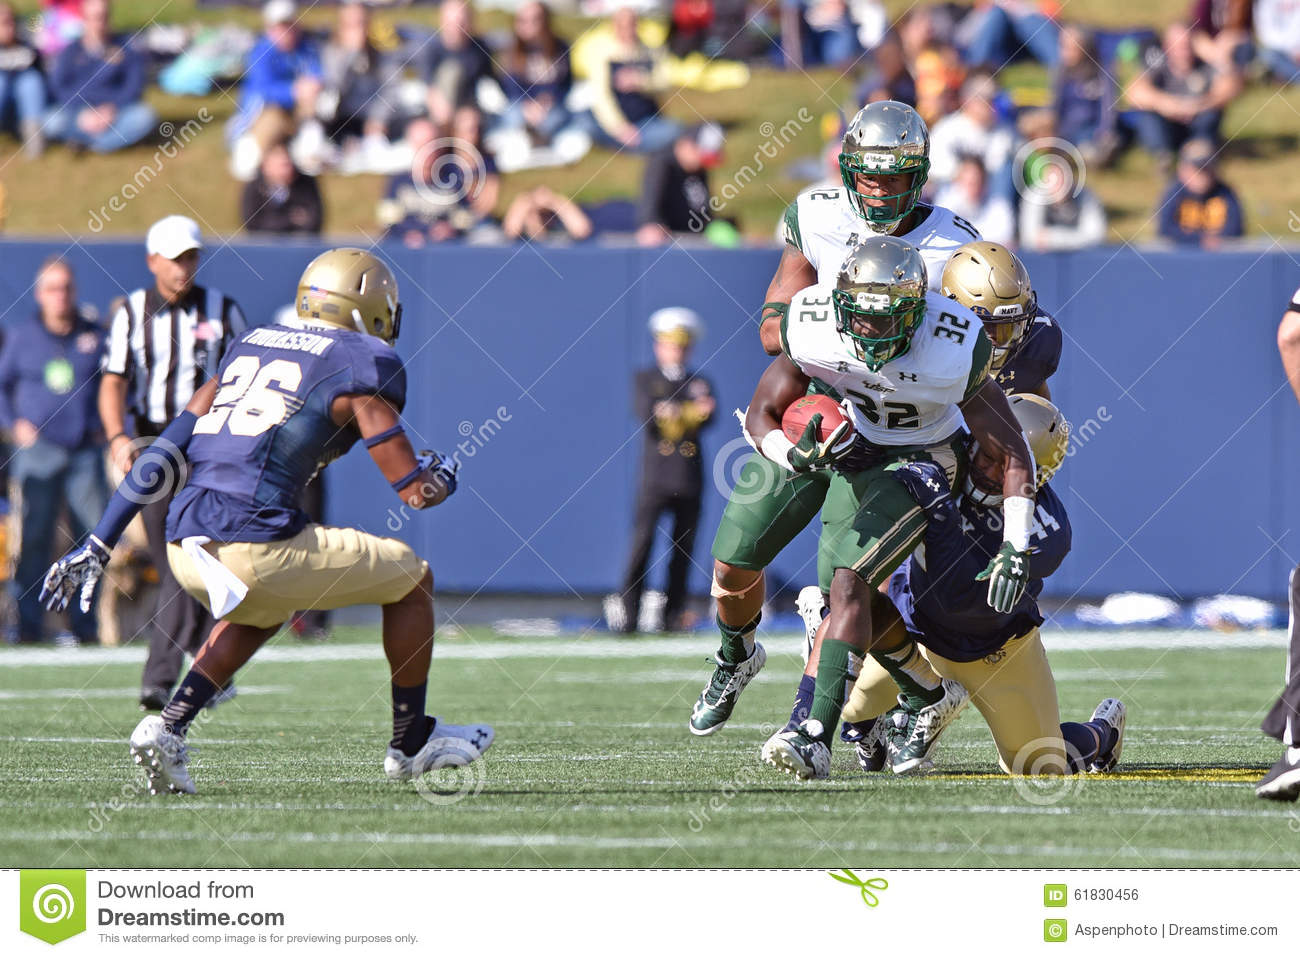 2015 Ncaa Football  South Florida At Navy Editorial Photo. Virginia Insurance Companies 6 Year Degree. What Kind Of Doctor Treats Depression. Freelance Business Plan Writer. Masters Communications Online. House Painters San Antonio Cures Of Diabetes. Protective Life And Annuity Car Donation Va. Prince Mohammed University Bell Auto Service. County Recorders Office Accidents Los Angeles